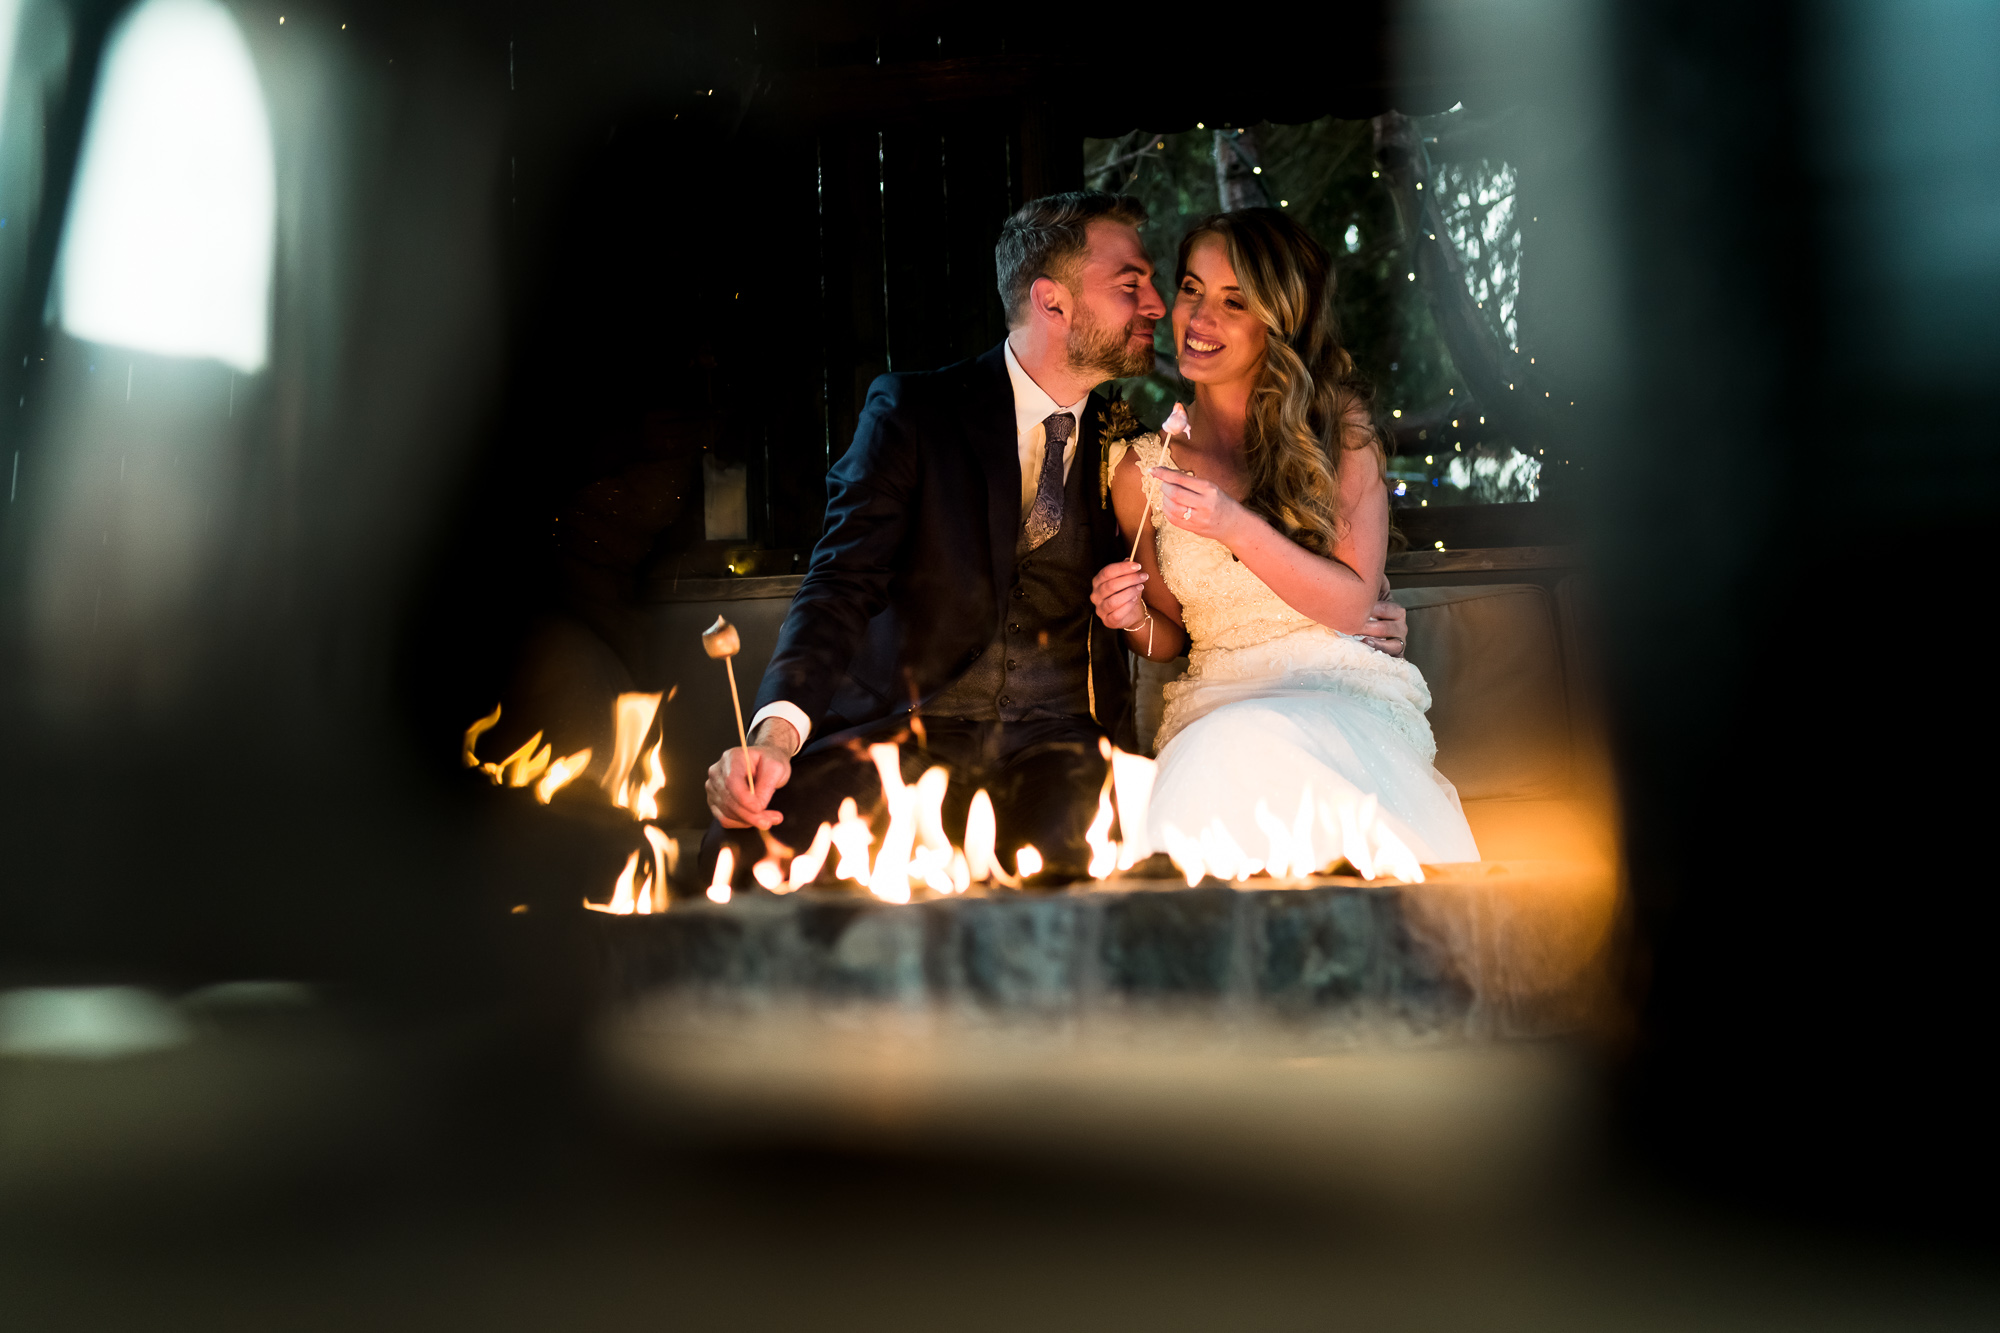 Tower Hill Barn Wedding Photographer based in north west england (4 of 7).jpg